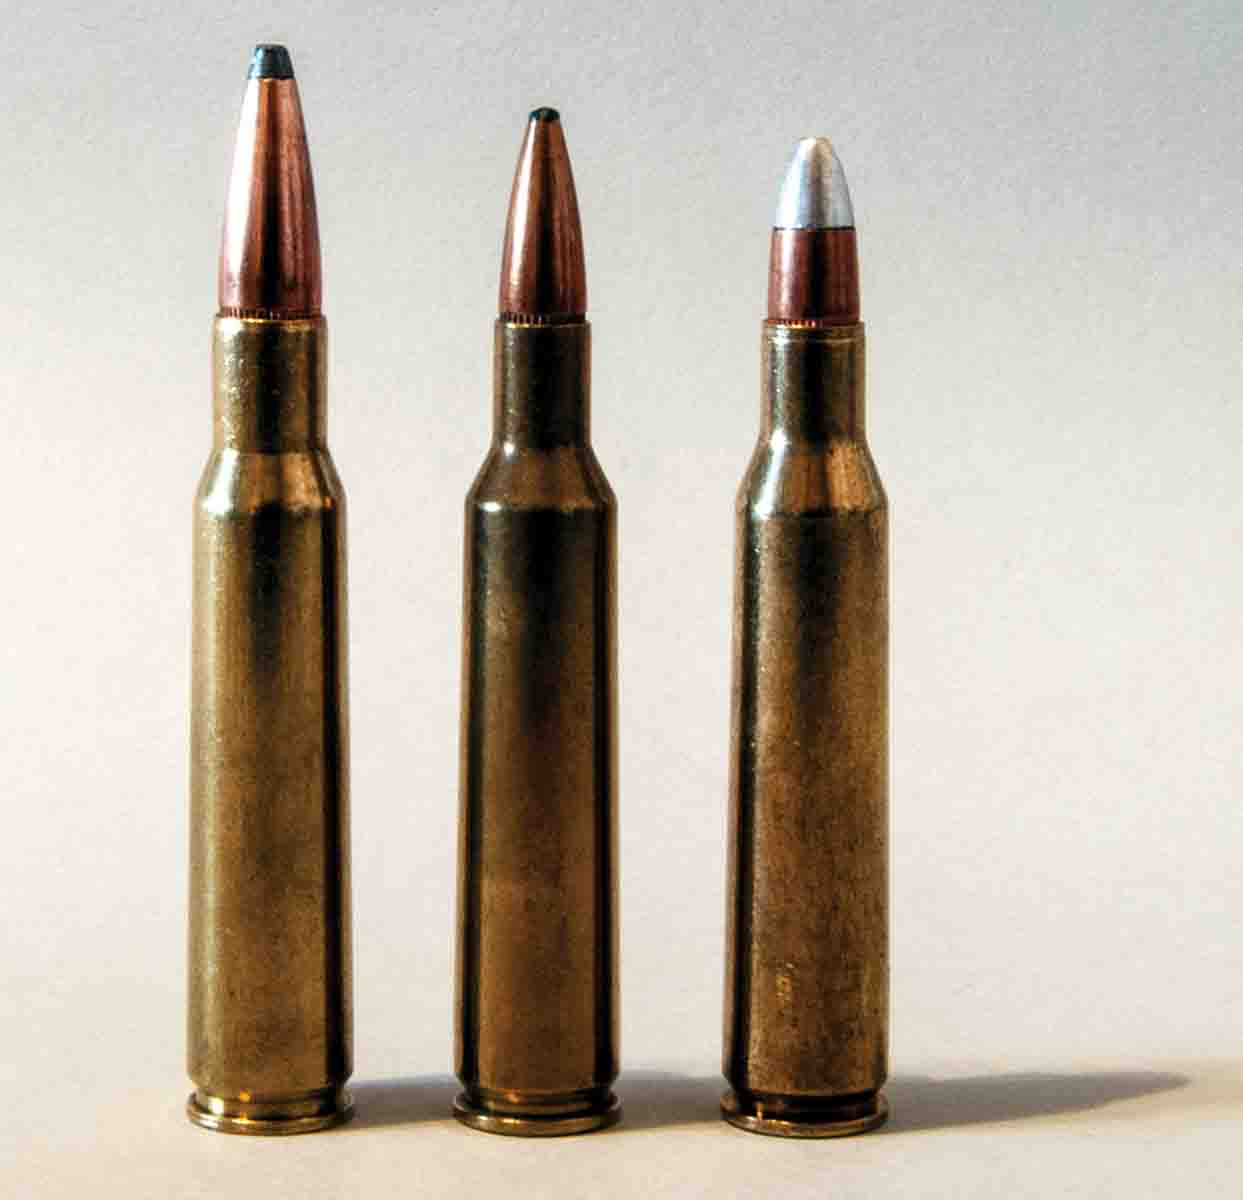 The 7x57 Mauser (left) was the base case for the 6mm Remington (center) and the .257 Roberts (right). The 7x57 will handle a broader range of bullet weights.